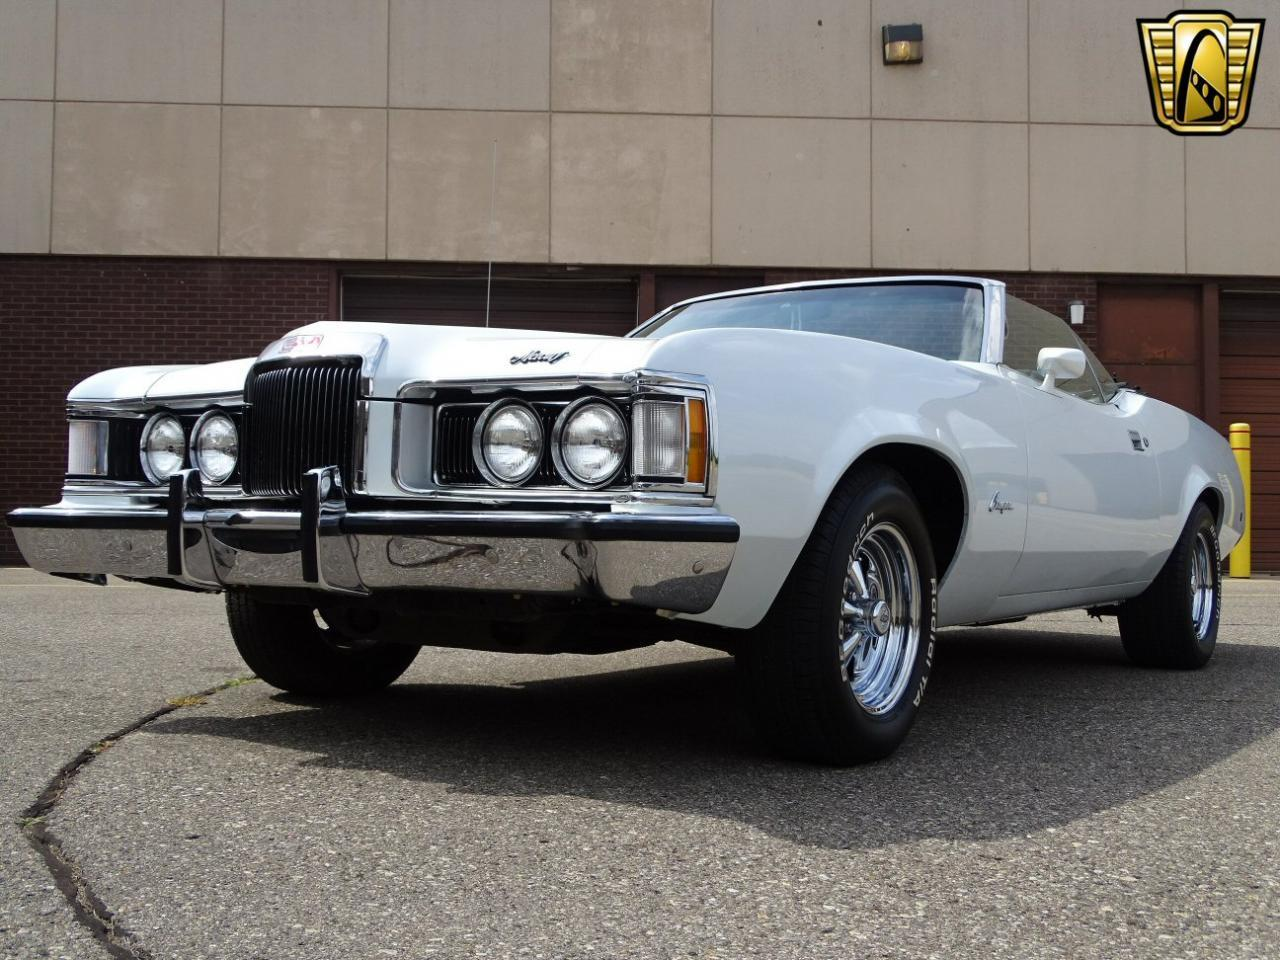 Large Picture of 1973 Mercury Cougar located in Michigan - $19,995.00 Offered by Gateway Classic Cars - Detroit - LCNZ